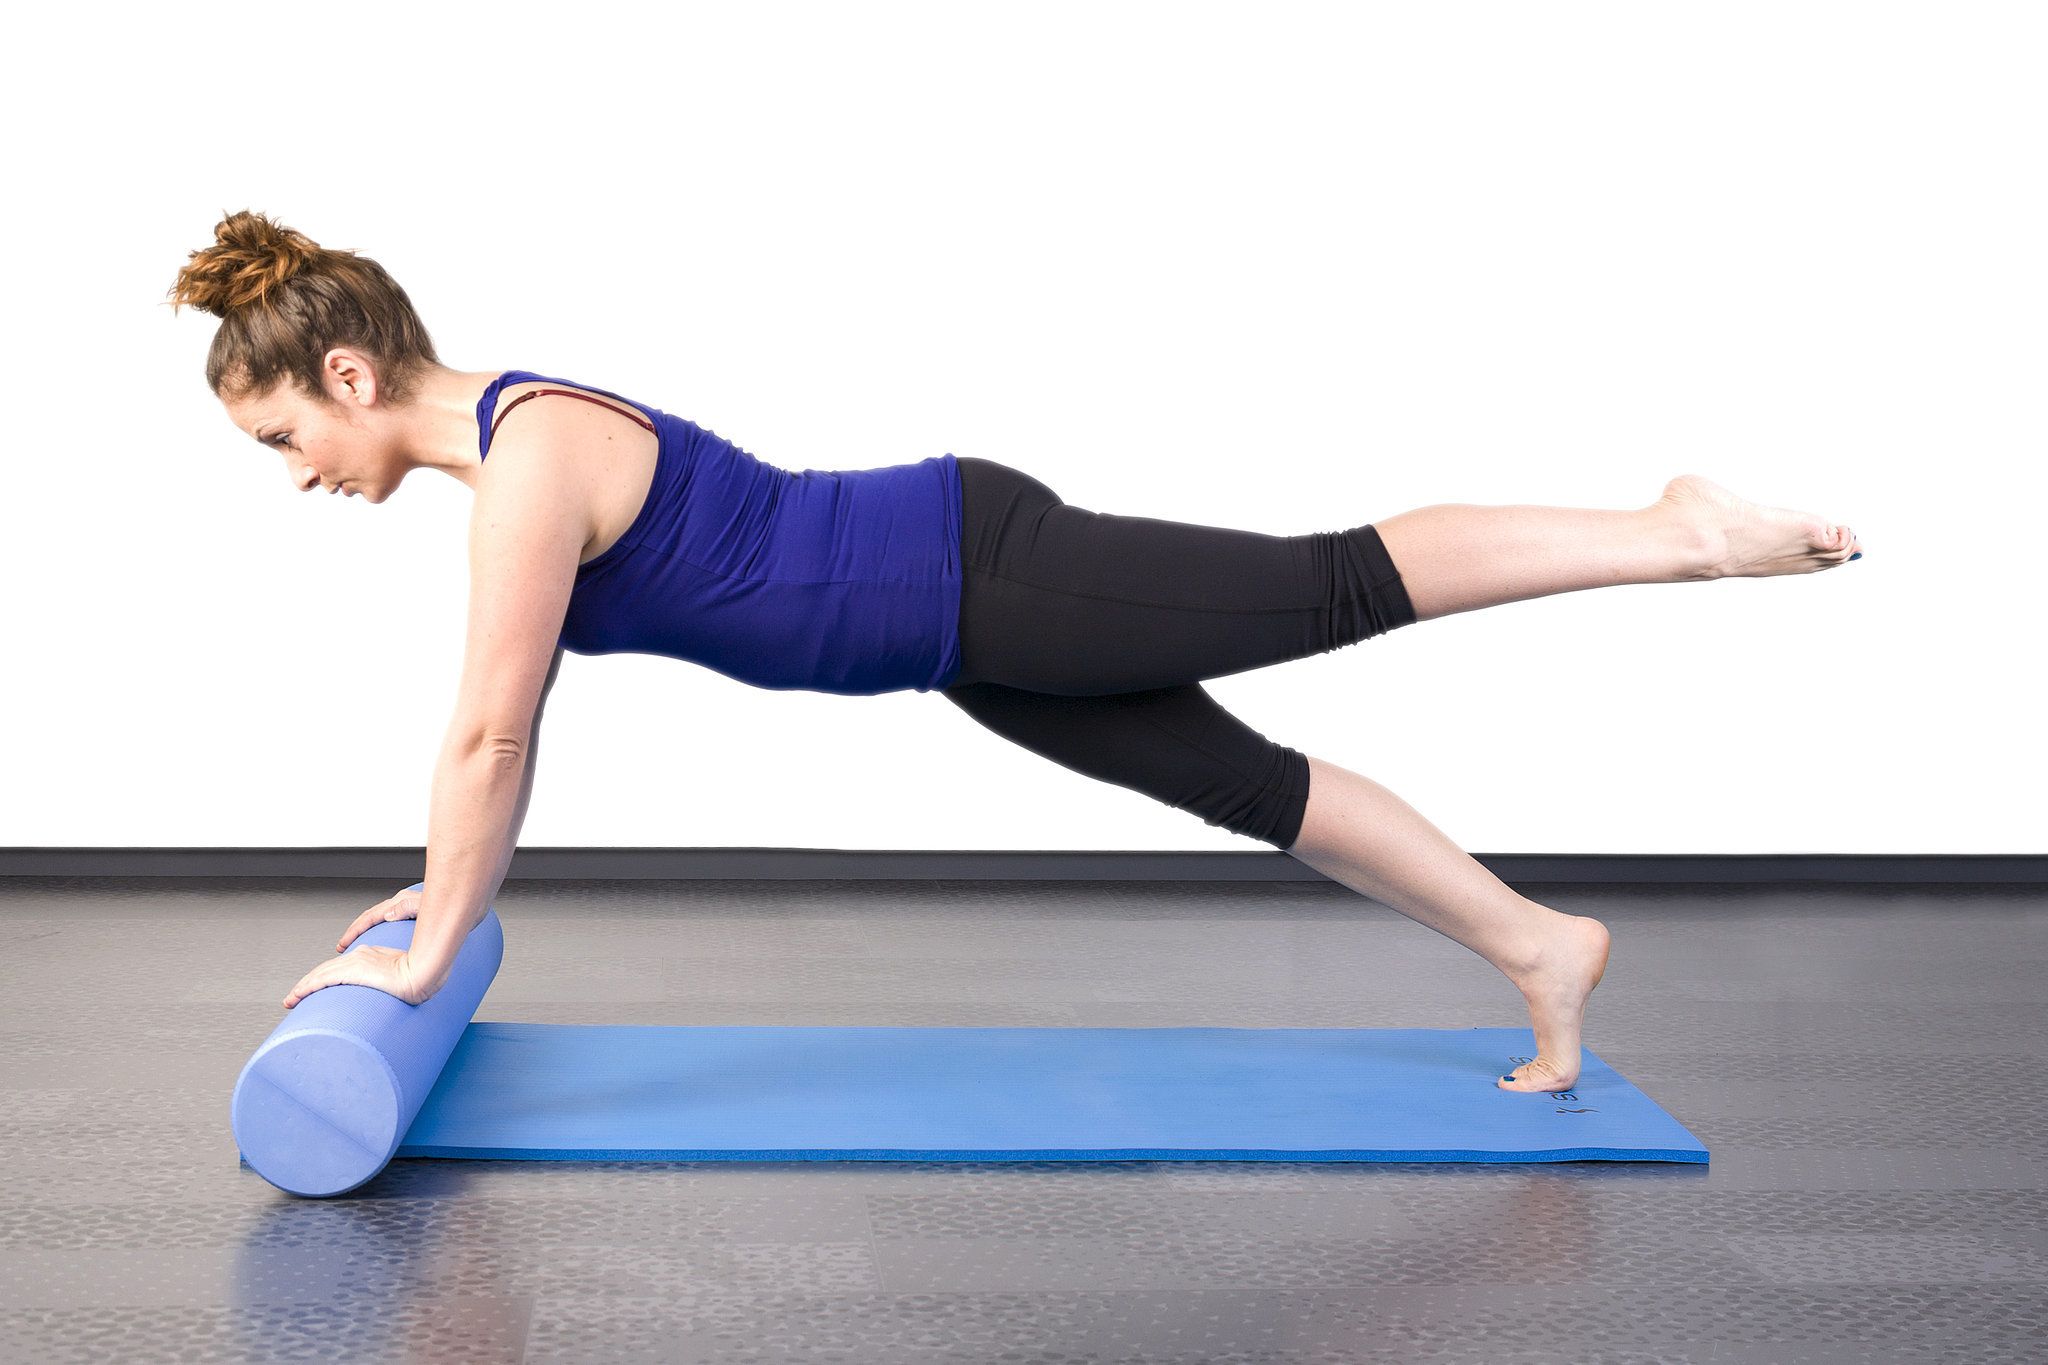 Getting The Most From Your Foam Roller